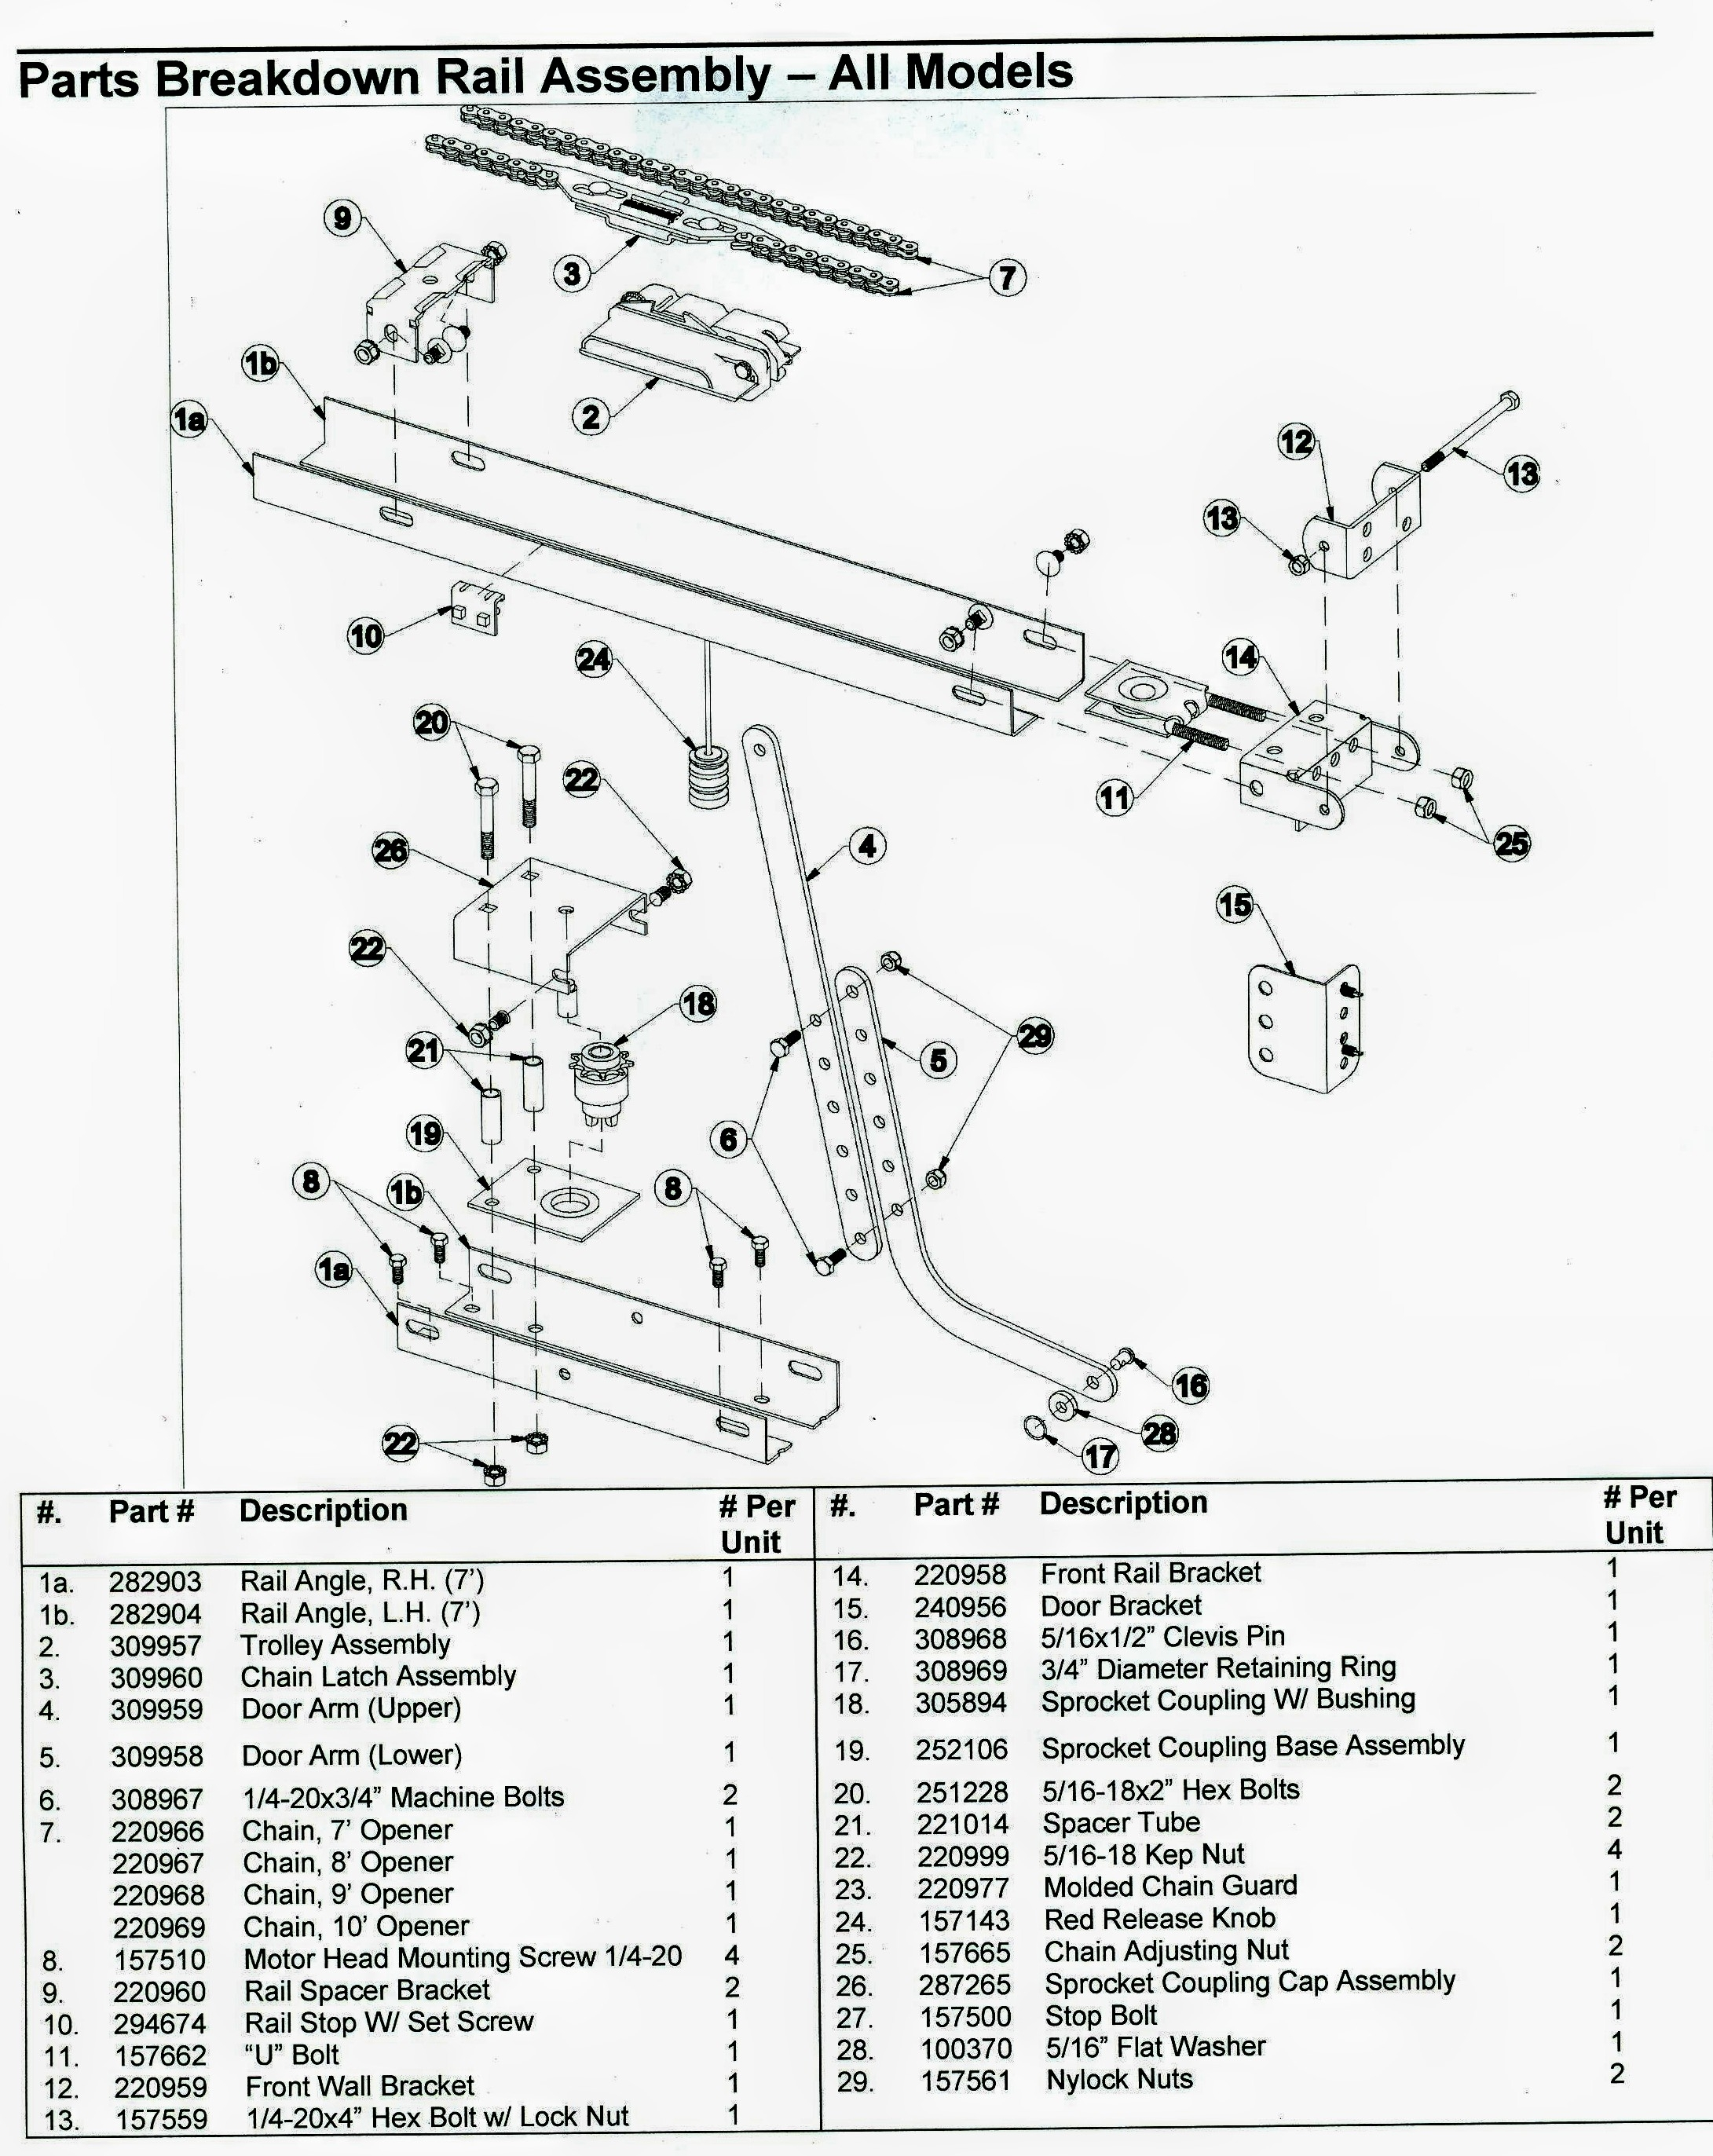 Wiring Diagram For Liftmaster Garage Door Opener On Free throughout Chamberlain Garage Door Opener Parts Diagram